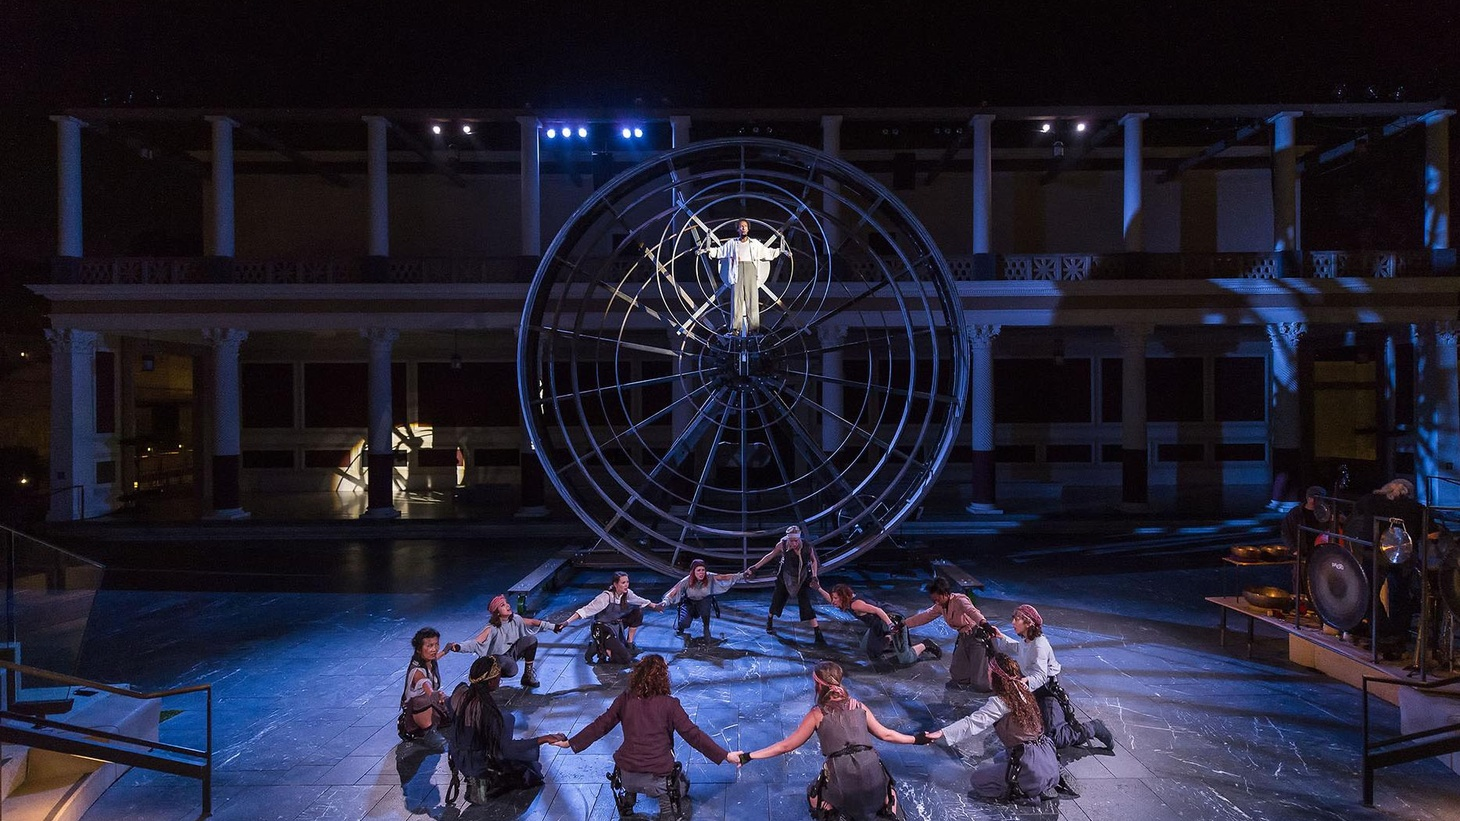 """How do you engage the Getty Villa's architecture and scale without falling prey to it? A look at CalArts Center for New Performance's production of """"Prometheus Bound."""""""